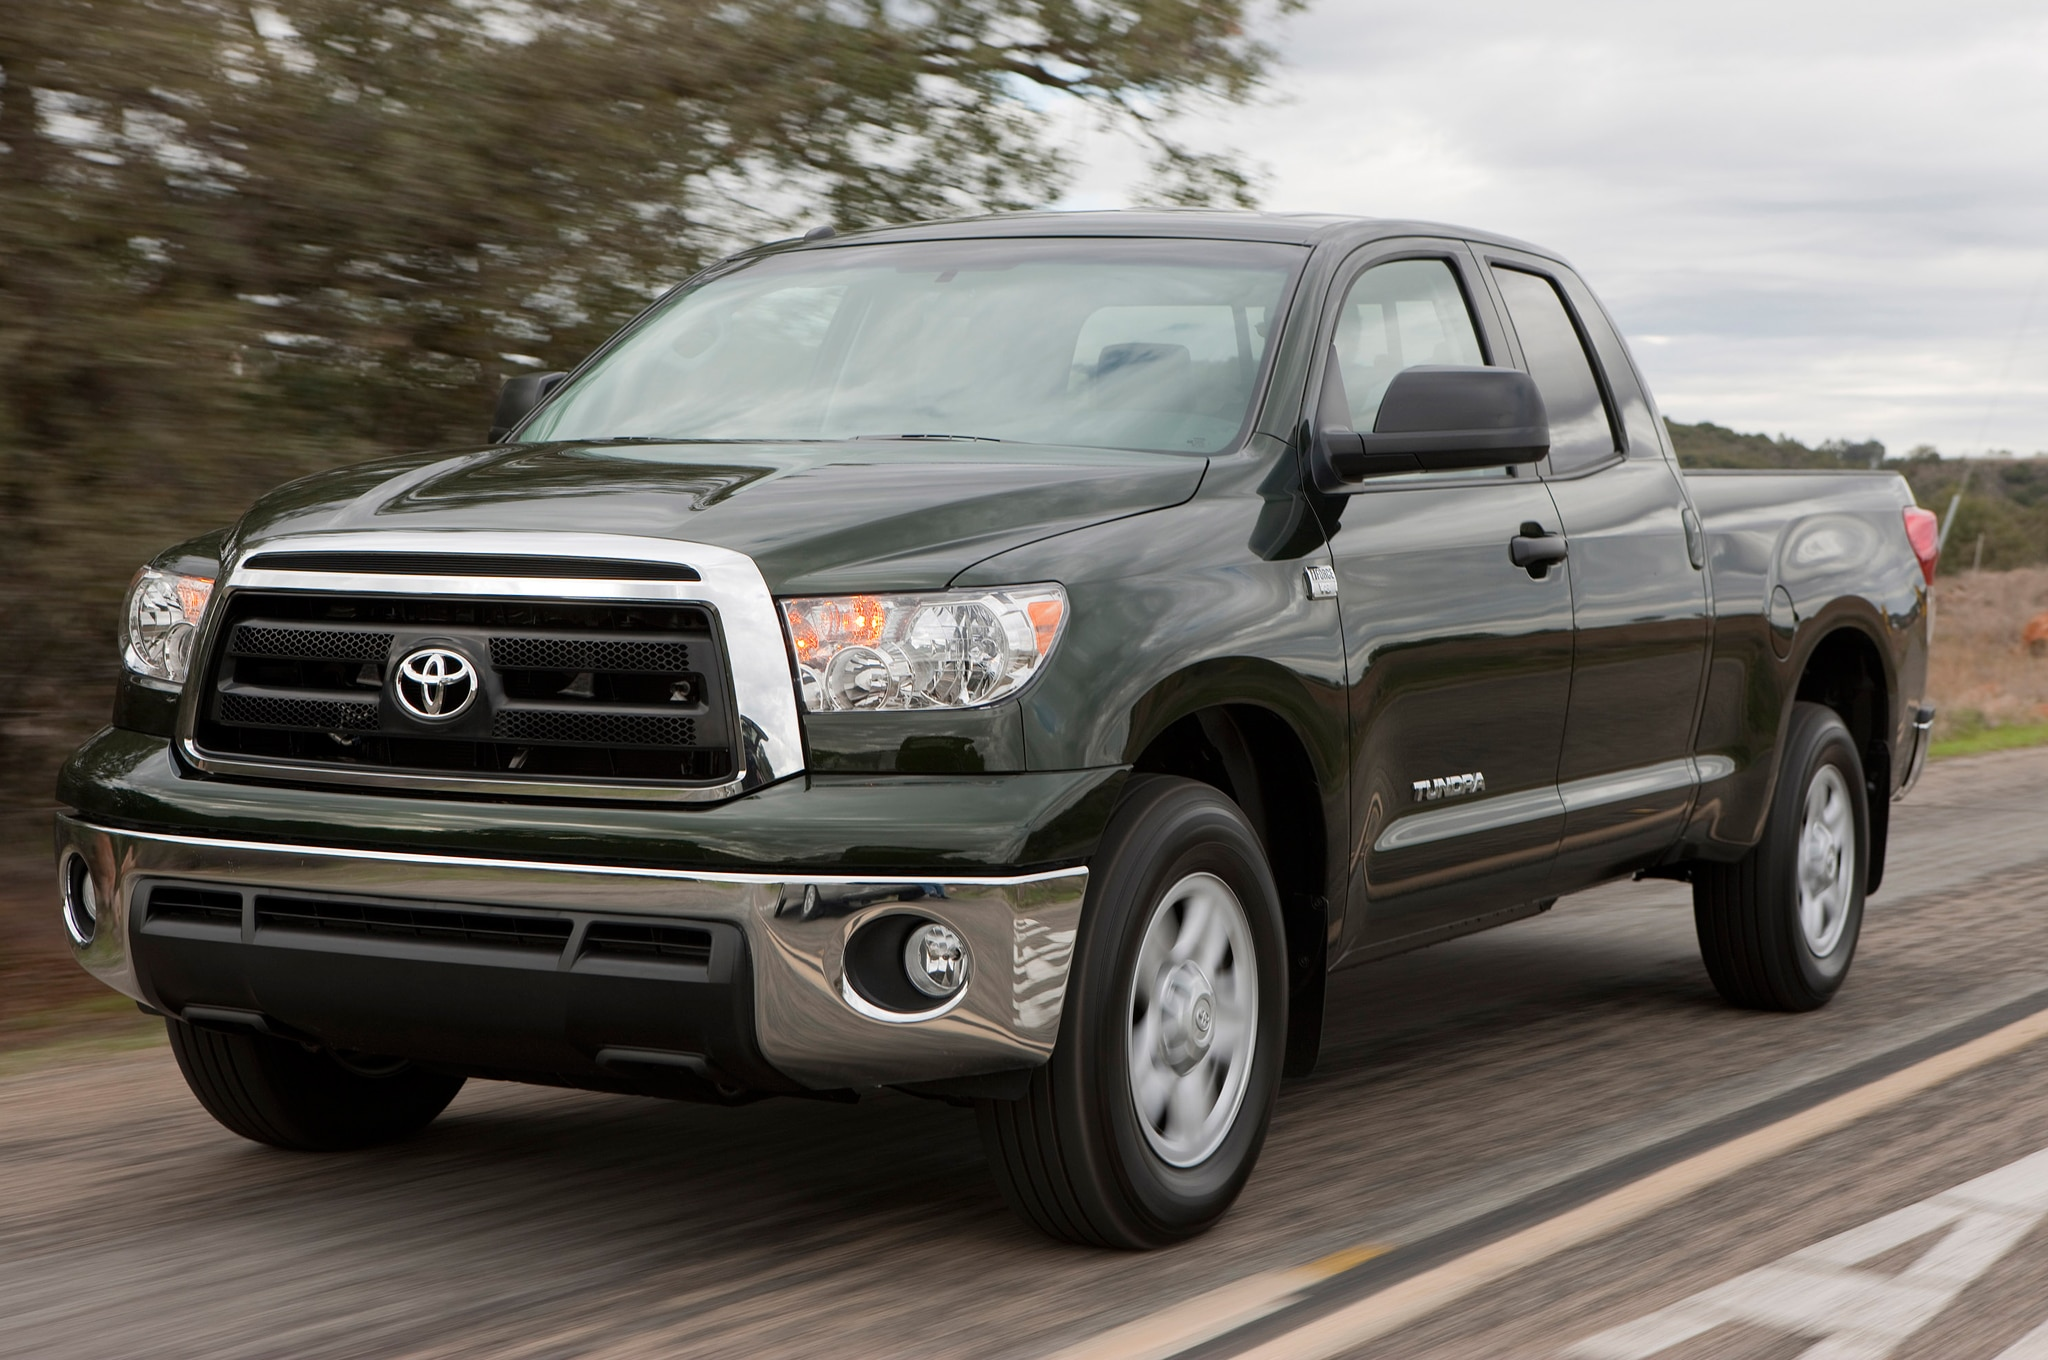 2013 toyota tundra double cab 4x4 editors 39 notebook automobile magazine. Black Bedroom Furniture Sets. Home Design Ideas